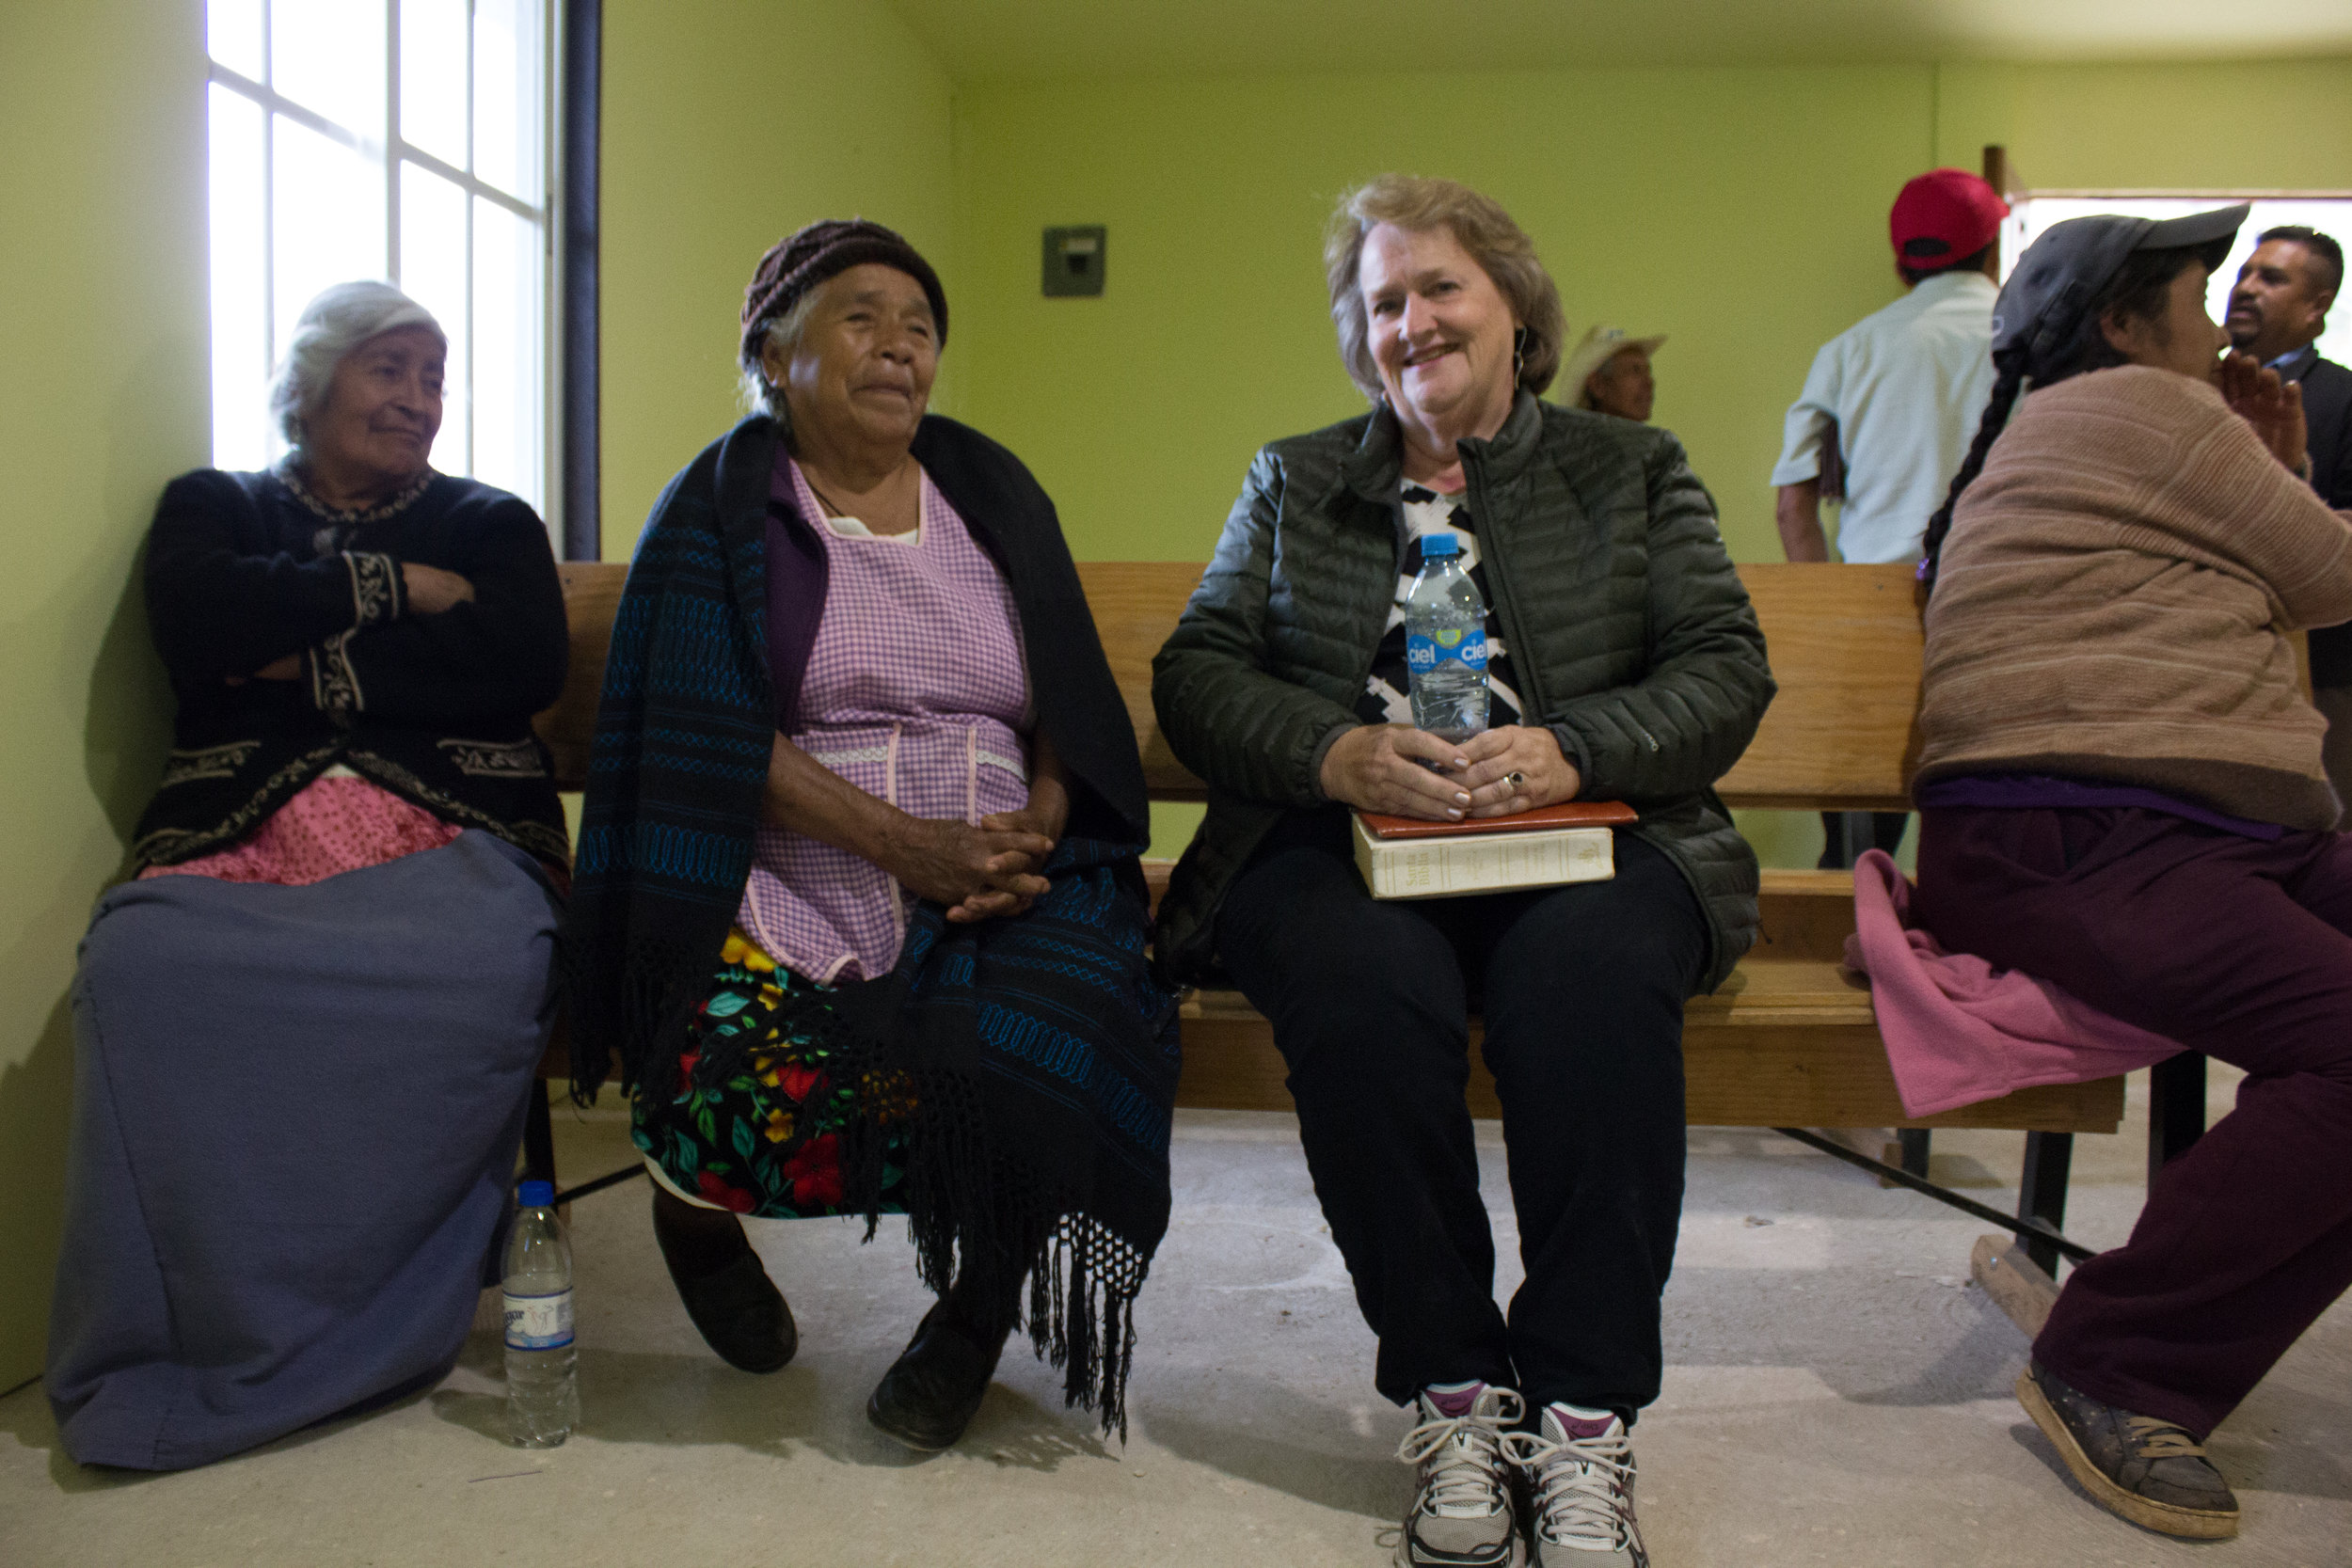 Ilene brings medicine and other items on her trips. She has met many people over the years, such as these women, and is familiar with their needs.